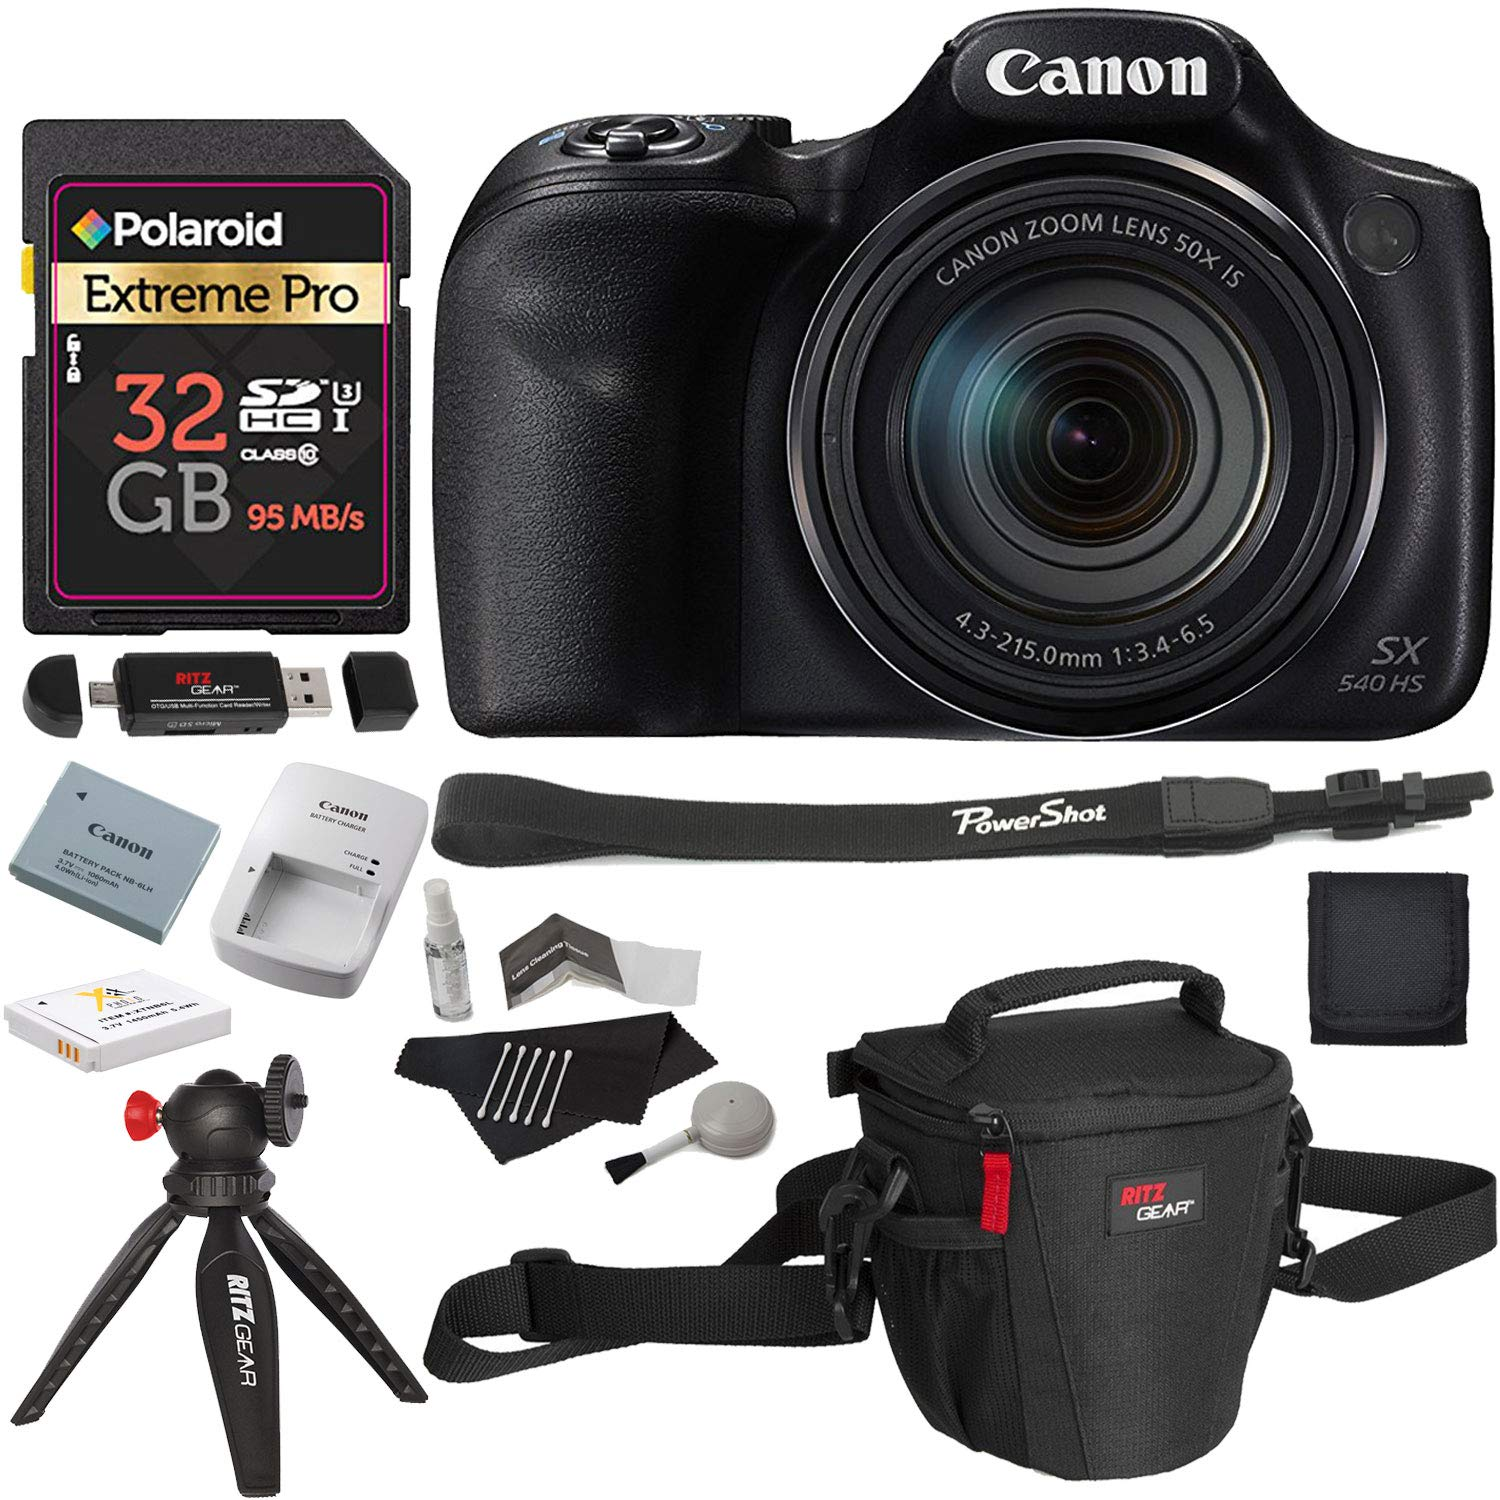 Canon PowerShot SX540 HS with 50x Optical Zoom and Built-in Wi-Fi, Polaroid 32 GB U3 Memory Card, Tripod, Spare Battery, Camera Bag and Accessory Bundle by Canon